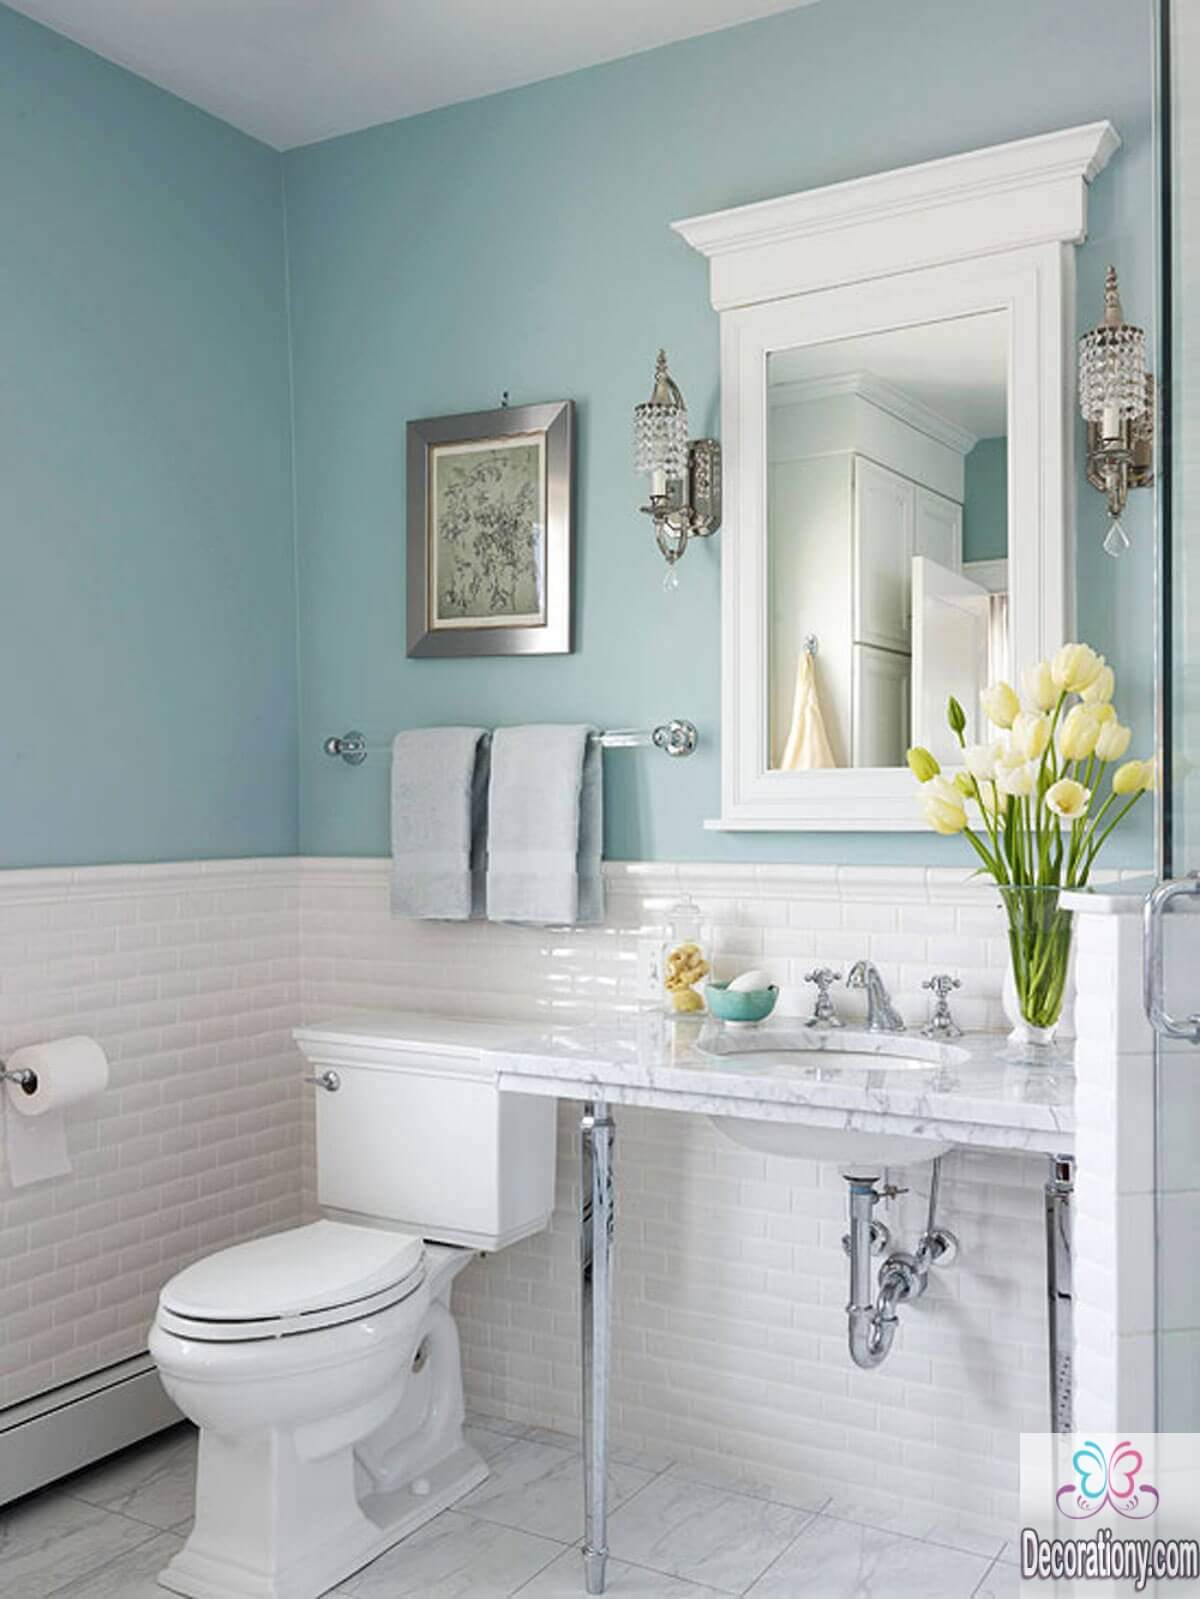 10 affordable colors for small bathrooms decoration y for Bathroom design tips